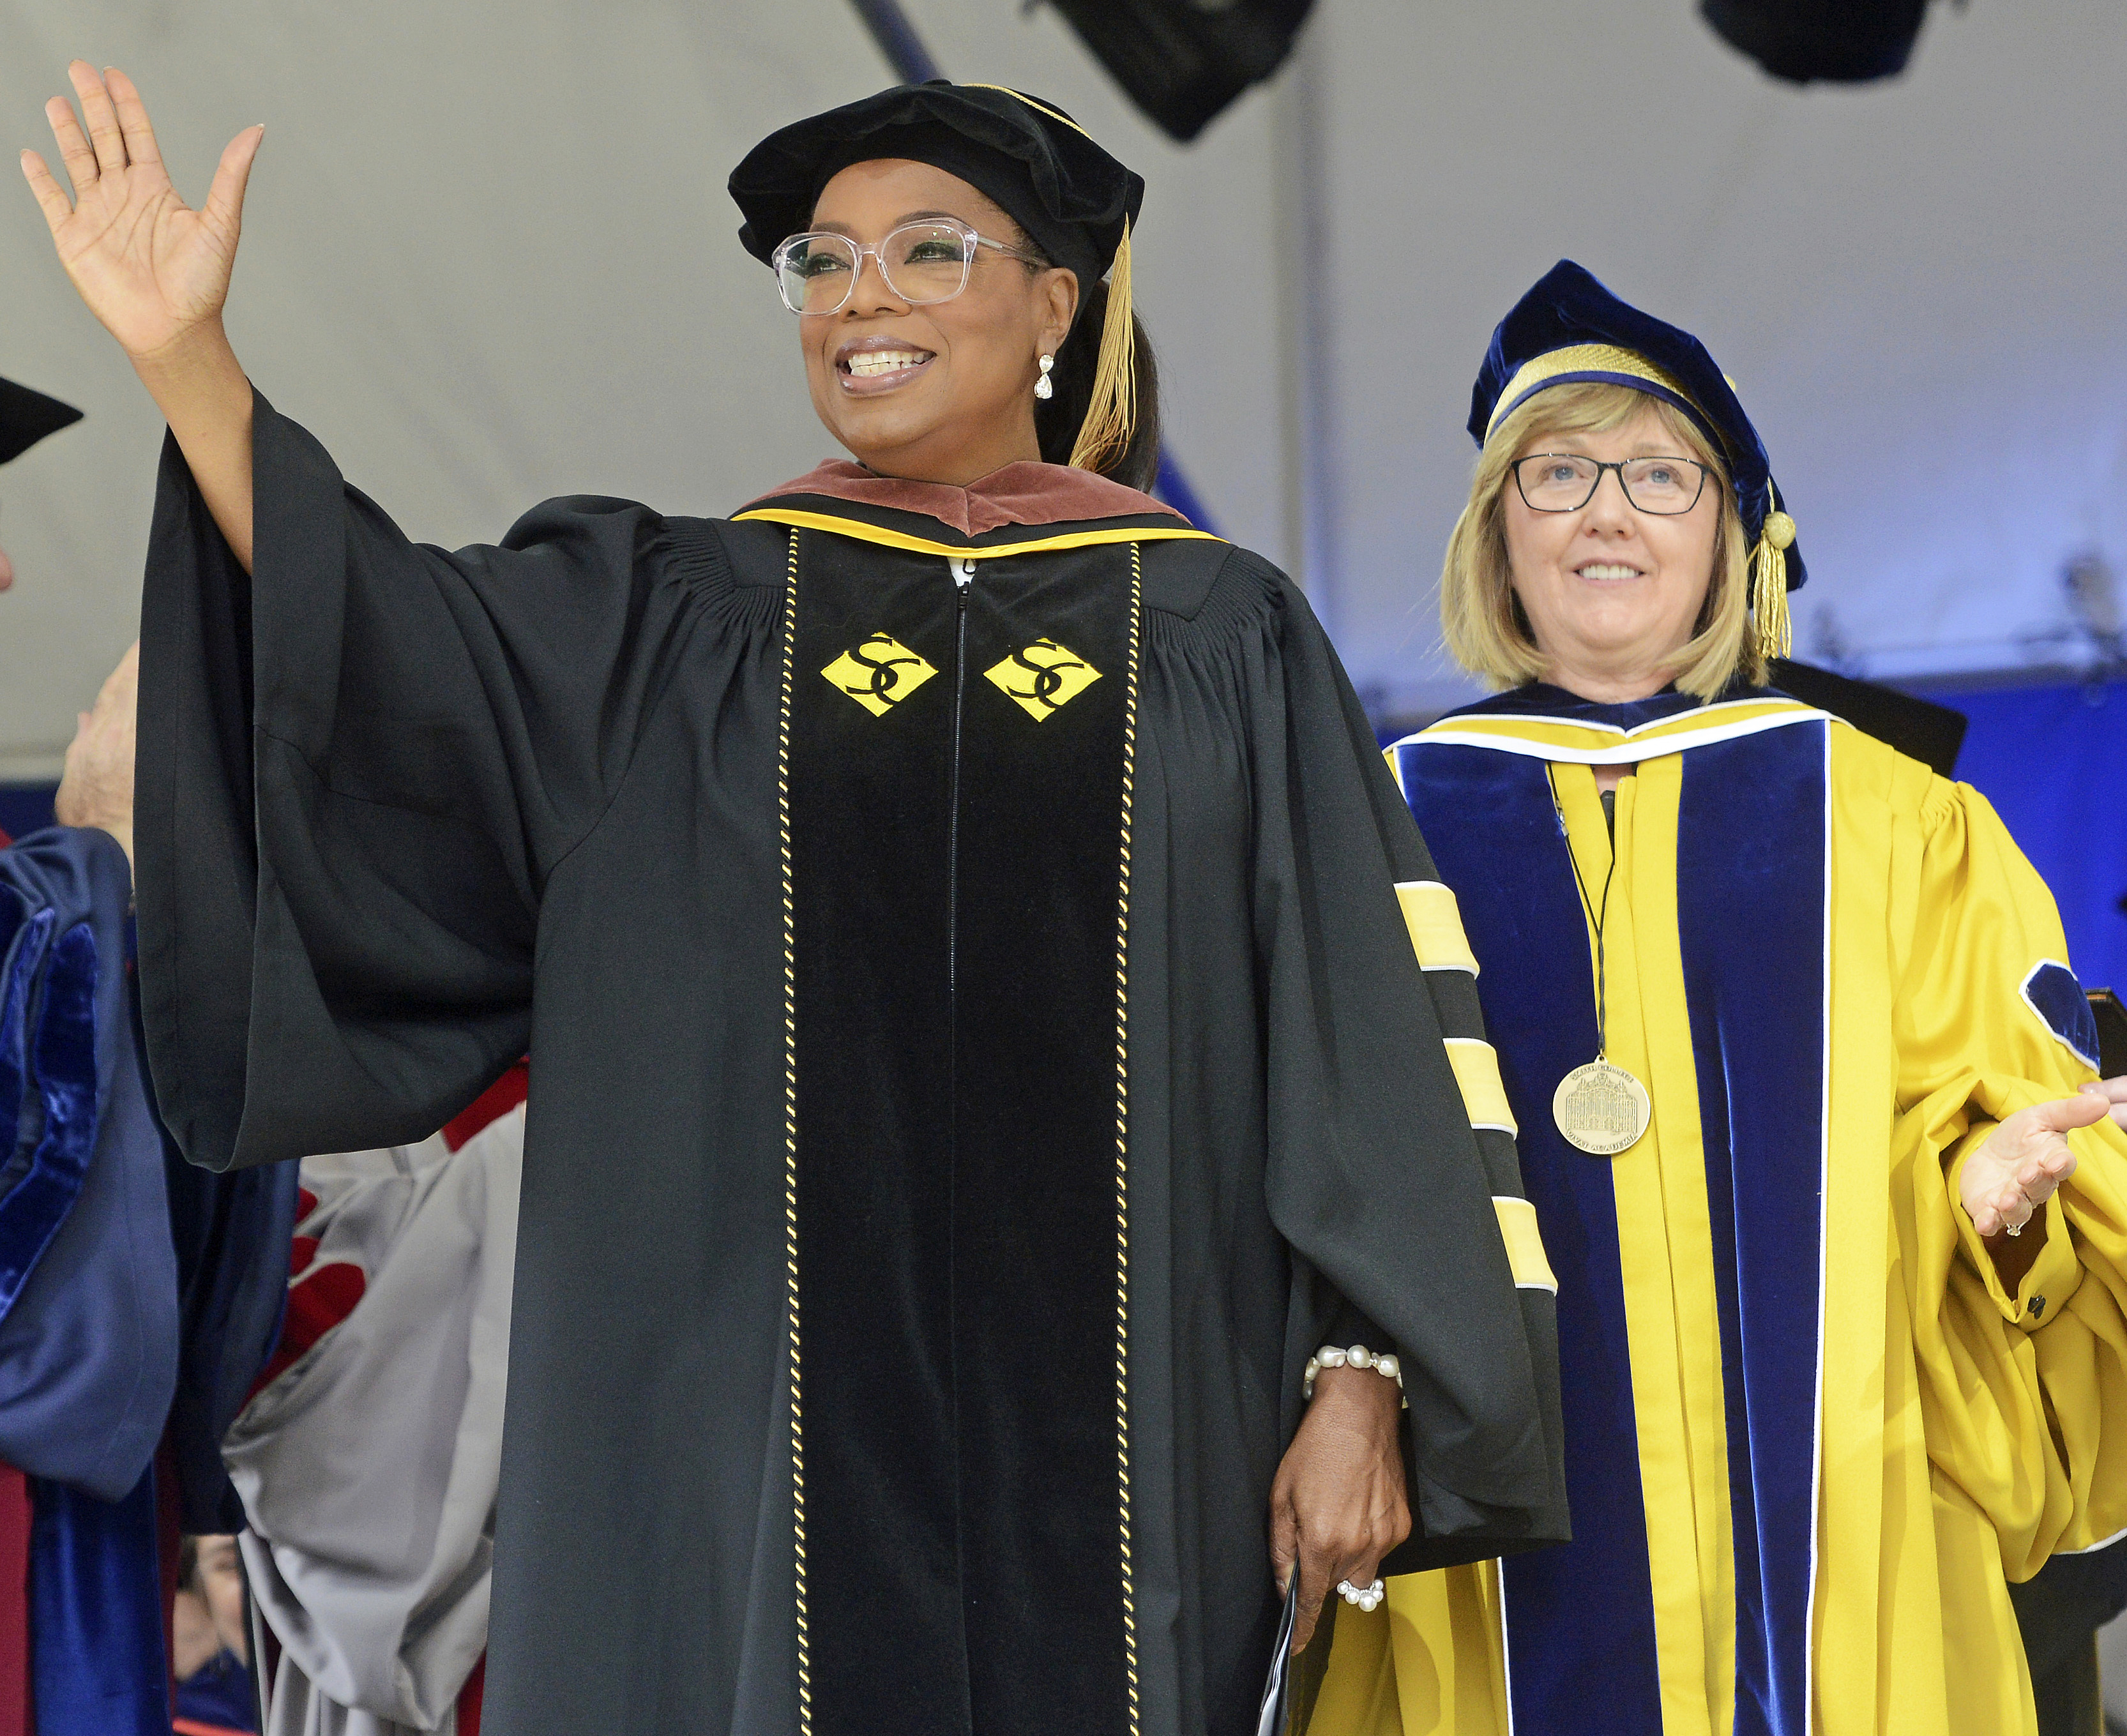 Smith Commencement Oprah